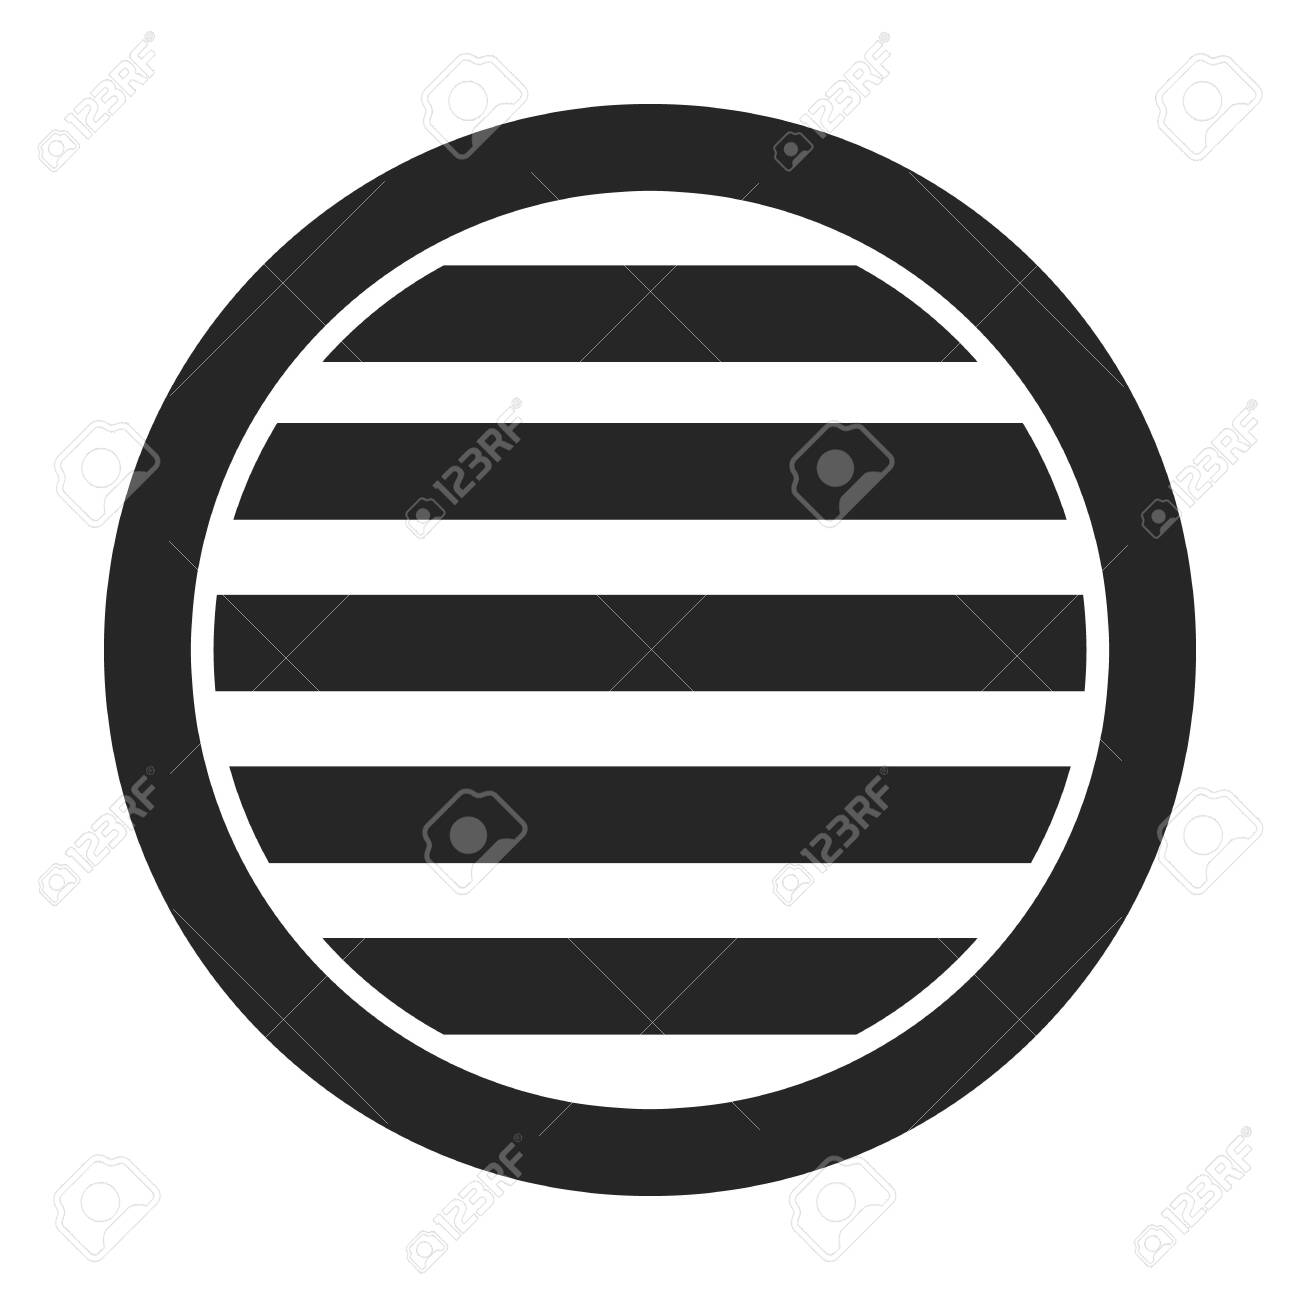 Ventilation grate vector icon.Black,simple vector icon isolated on white background ventilation grate. - 139754834